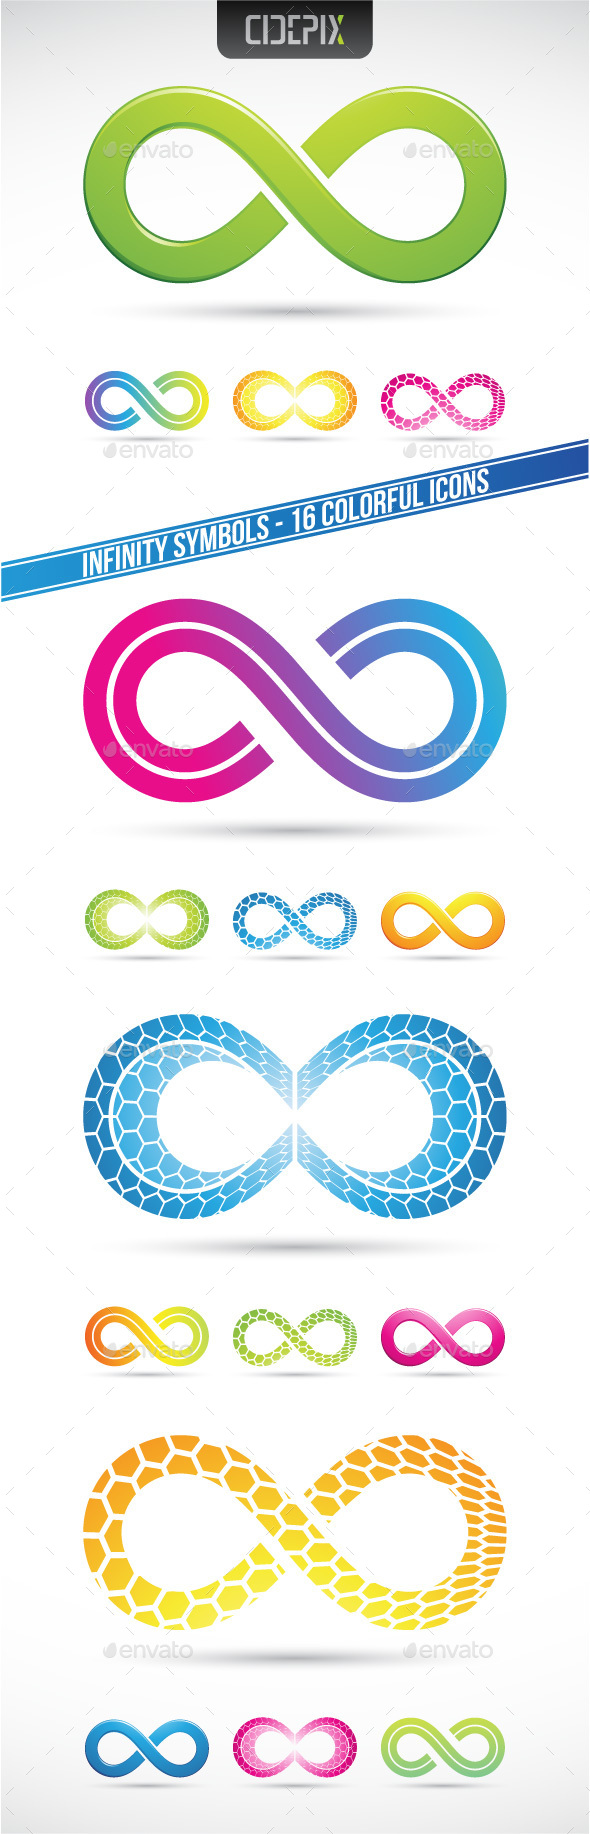 Infinity Symbols - Abstract Icons